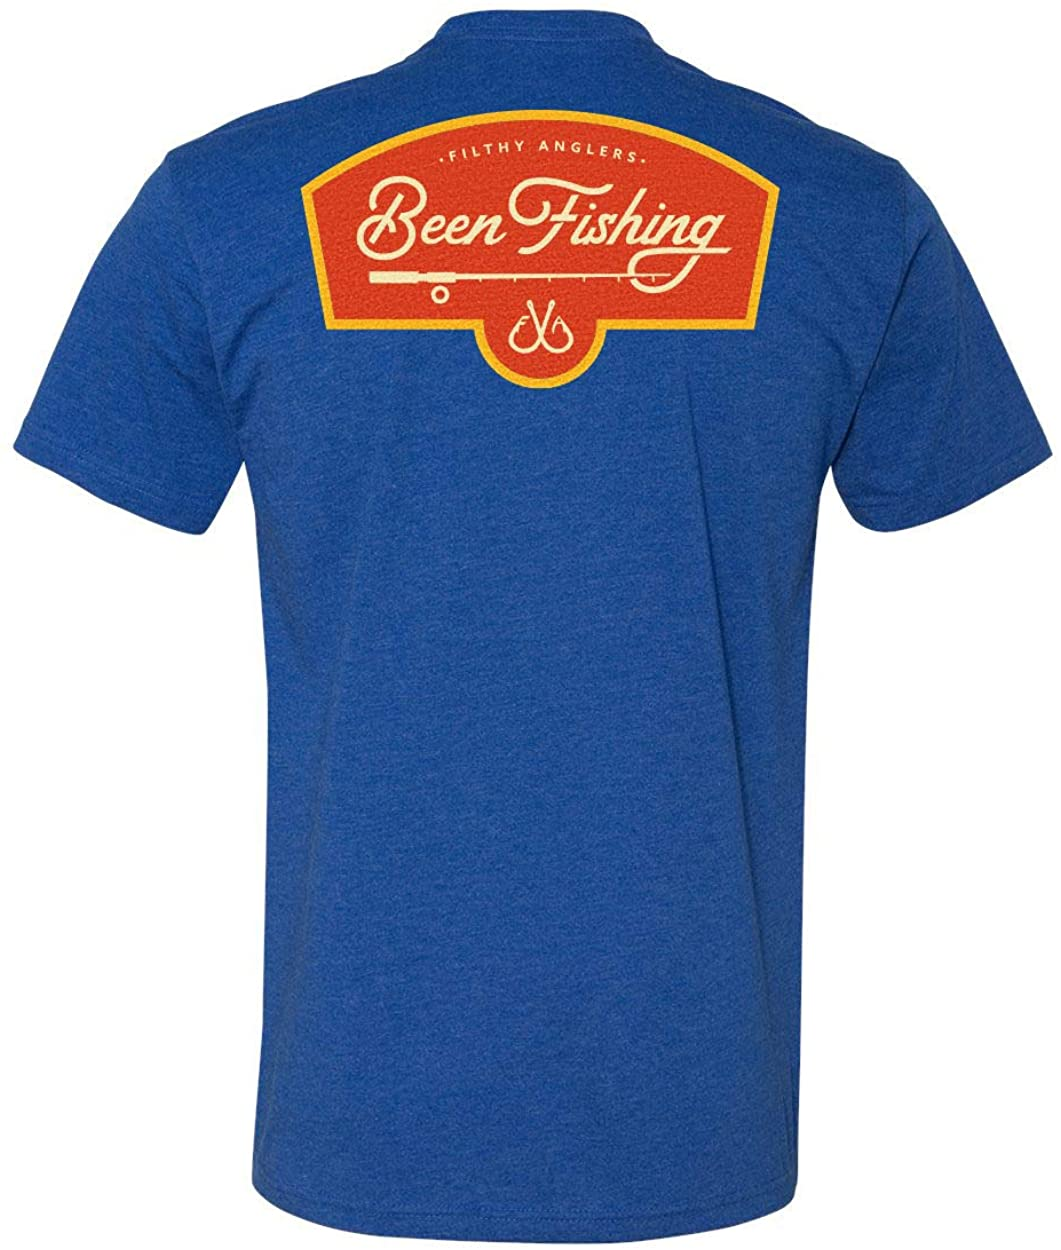 Filthy Anglers Fishing T-Shirt for Active Men & Women- Been Fishing Design